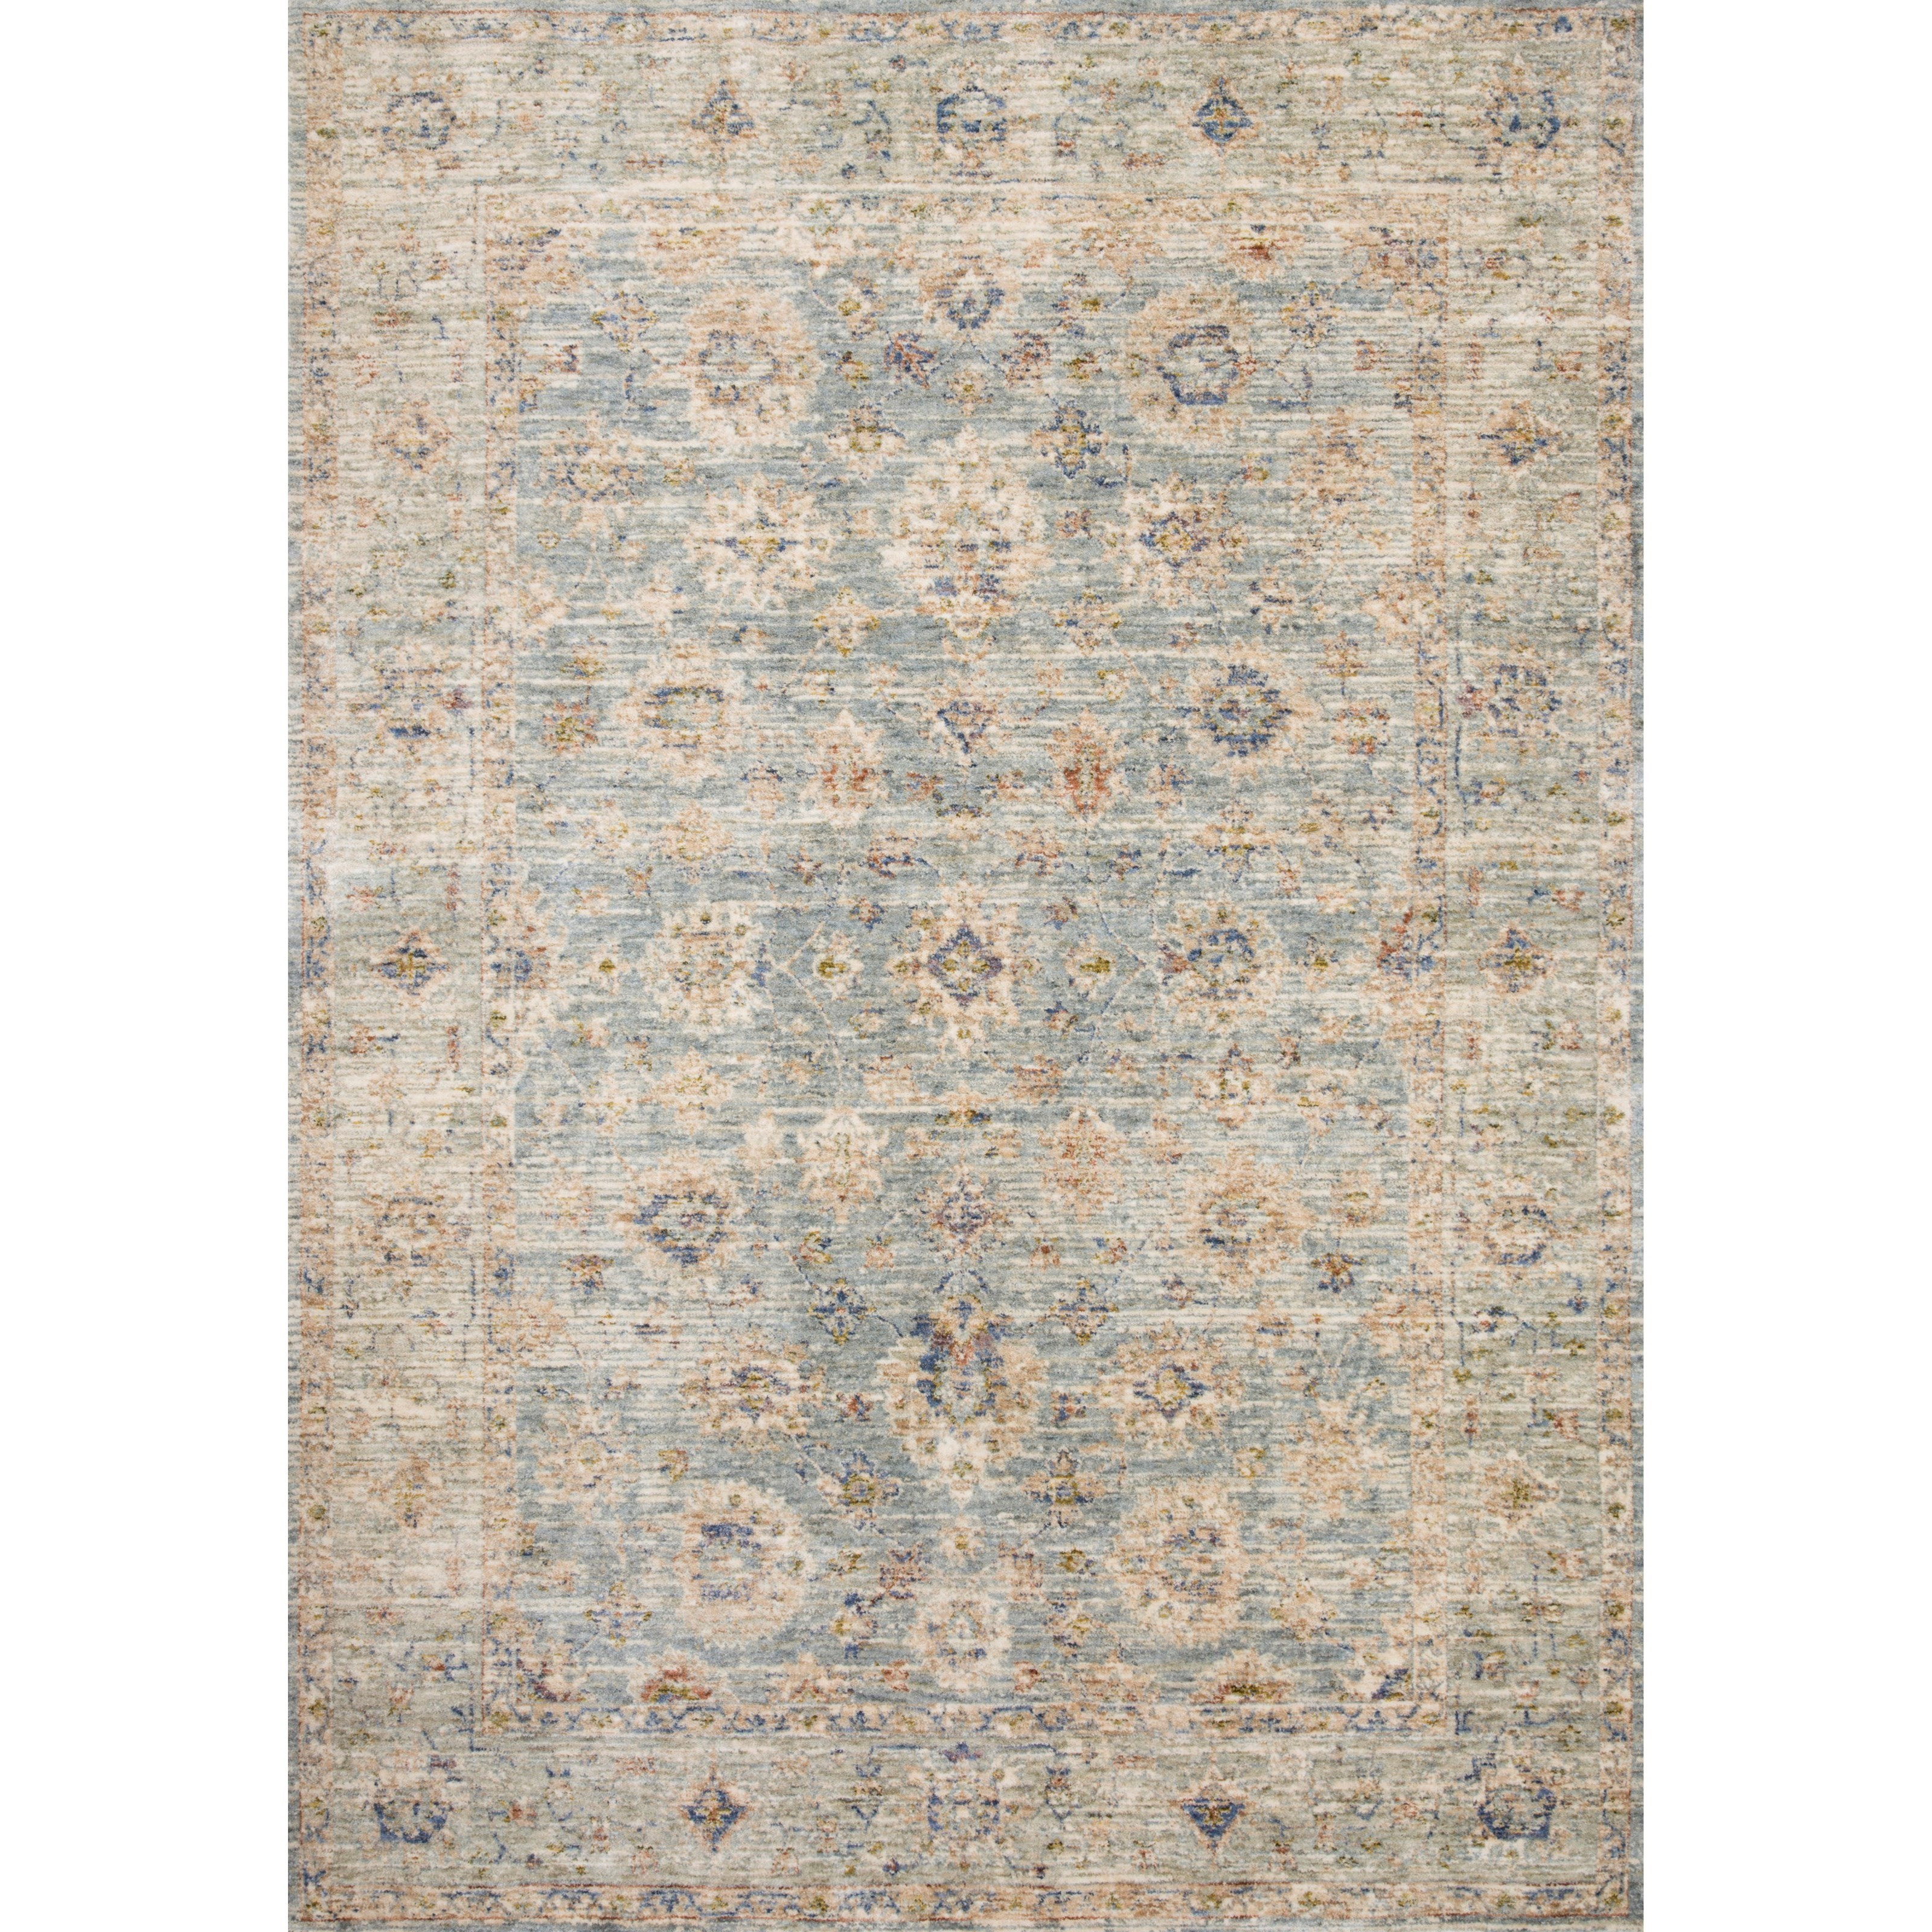 """Revere 7'10"""" x 10' Light Blue / Multi Rug by Loloi Rugs at Virginia Furniture Market"""